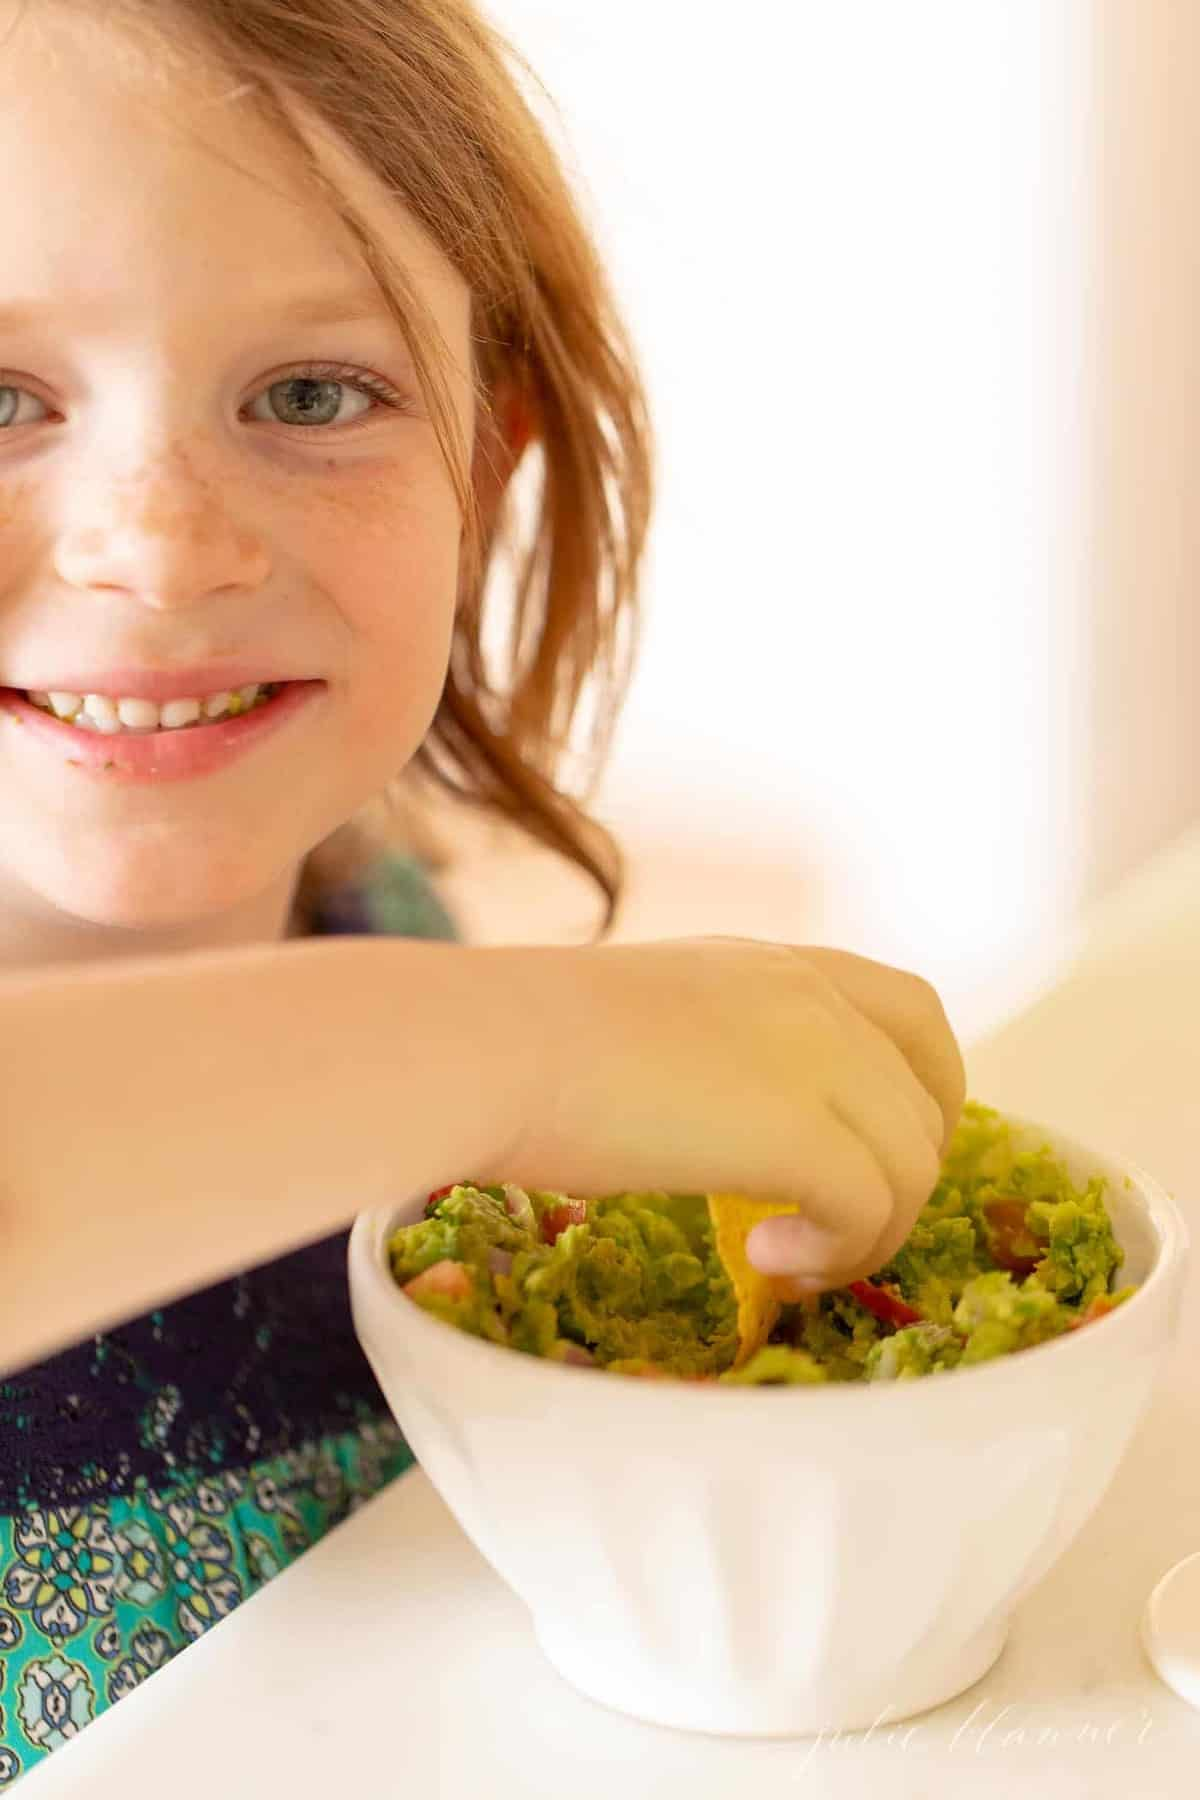 A little girl dipping into a bowl of homemade fresh guacamole.